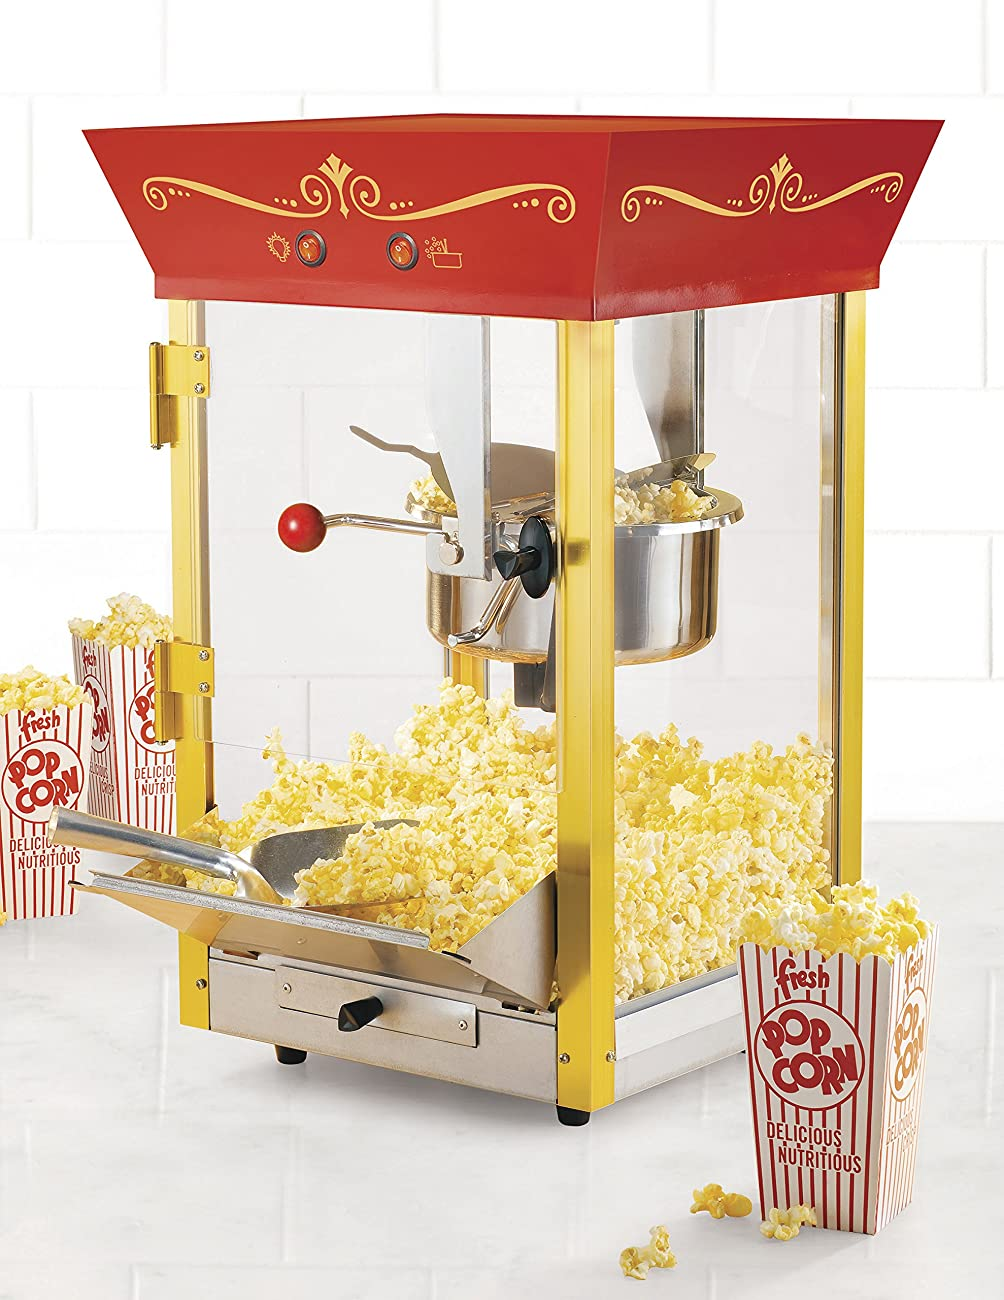 Nostalgia CCP610 59-Inch Tall Vintage Collection 8-Ounce Kettle Popcorn & Concession Cart 3